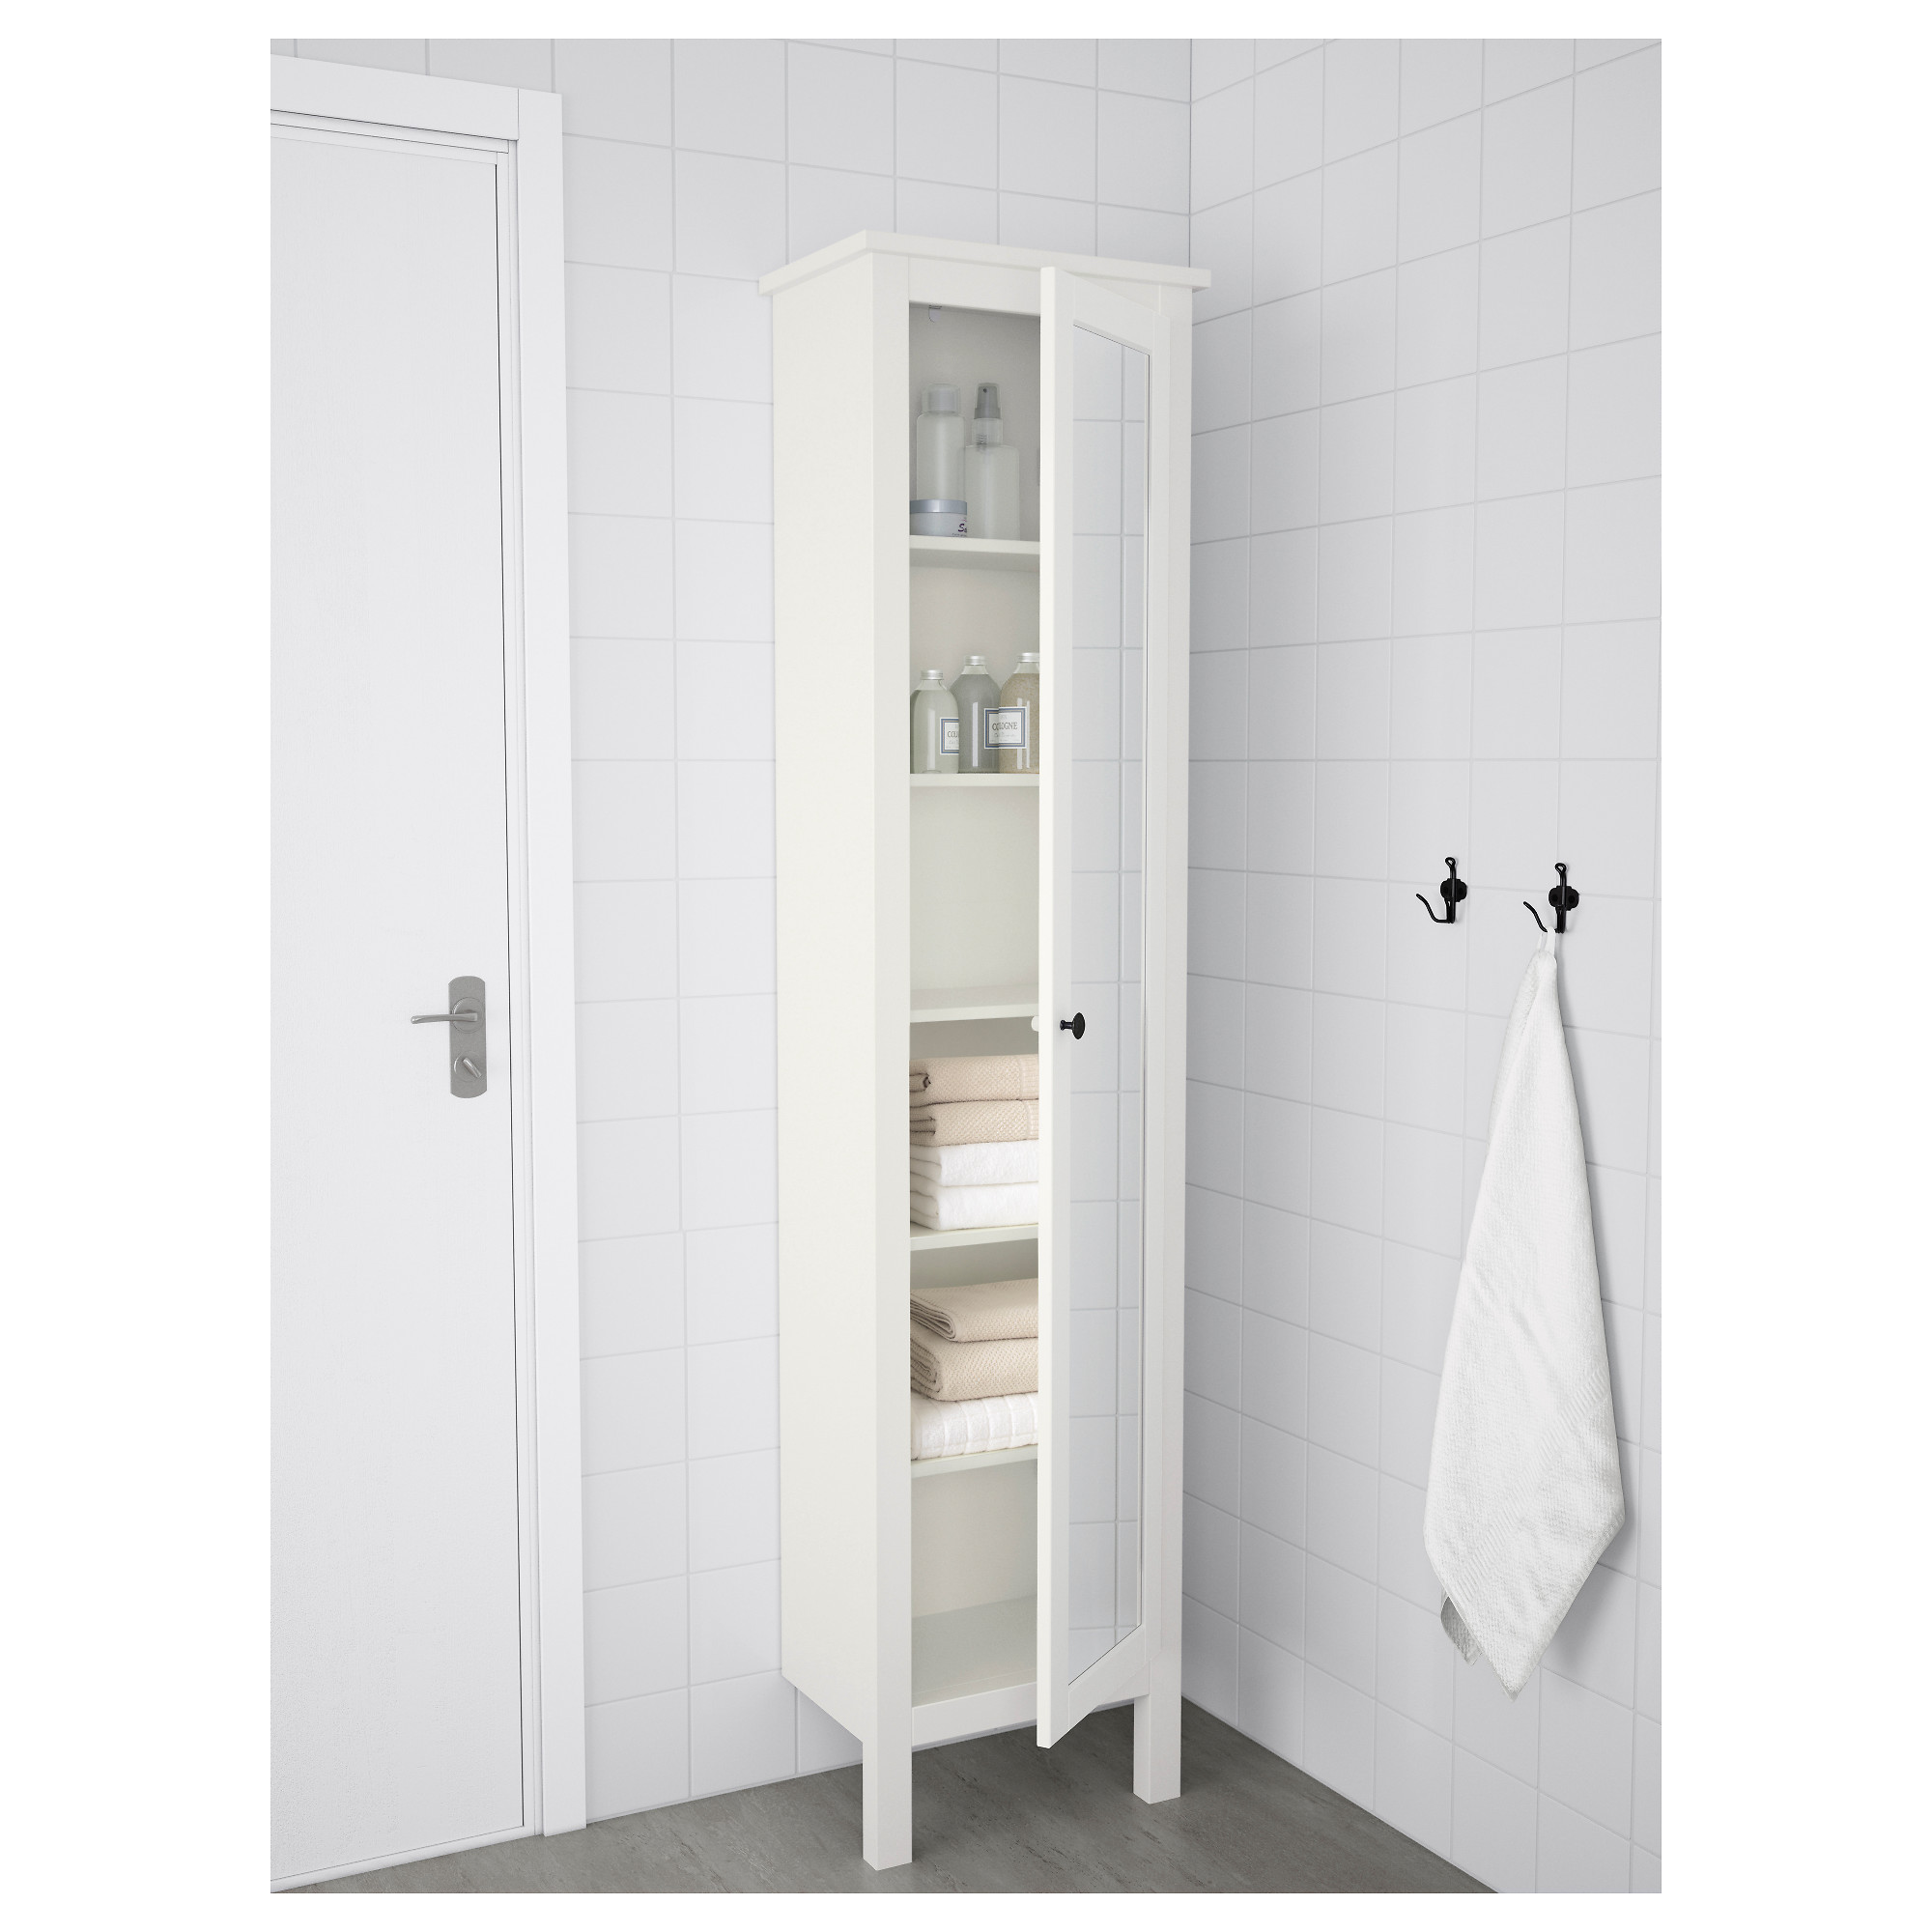 Bathroom Mirror Door hemnes high cabinet with mirror door - white - ikea